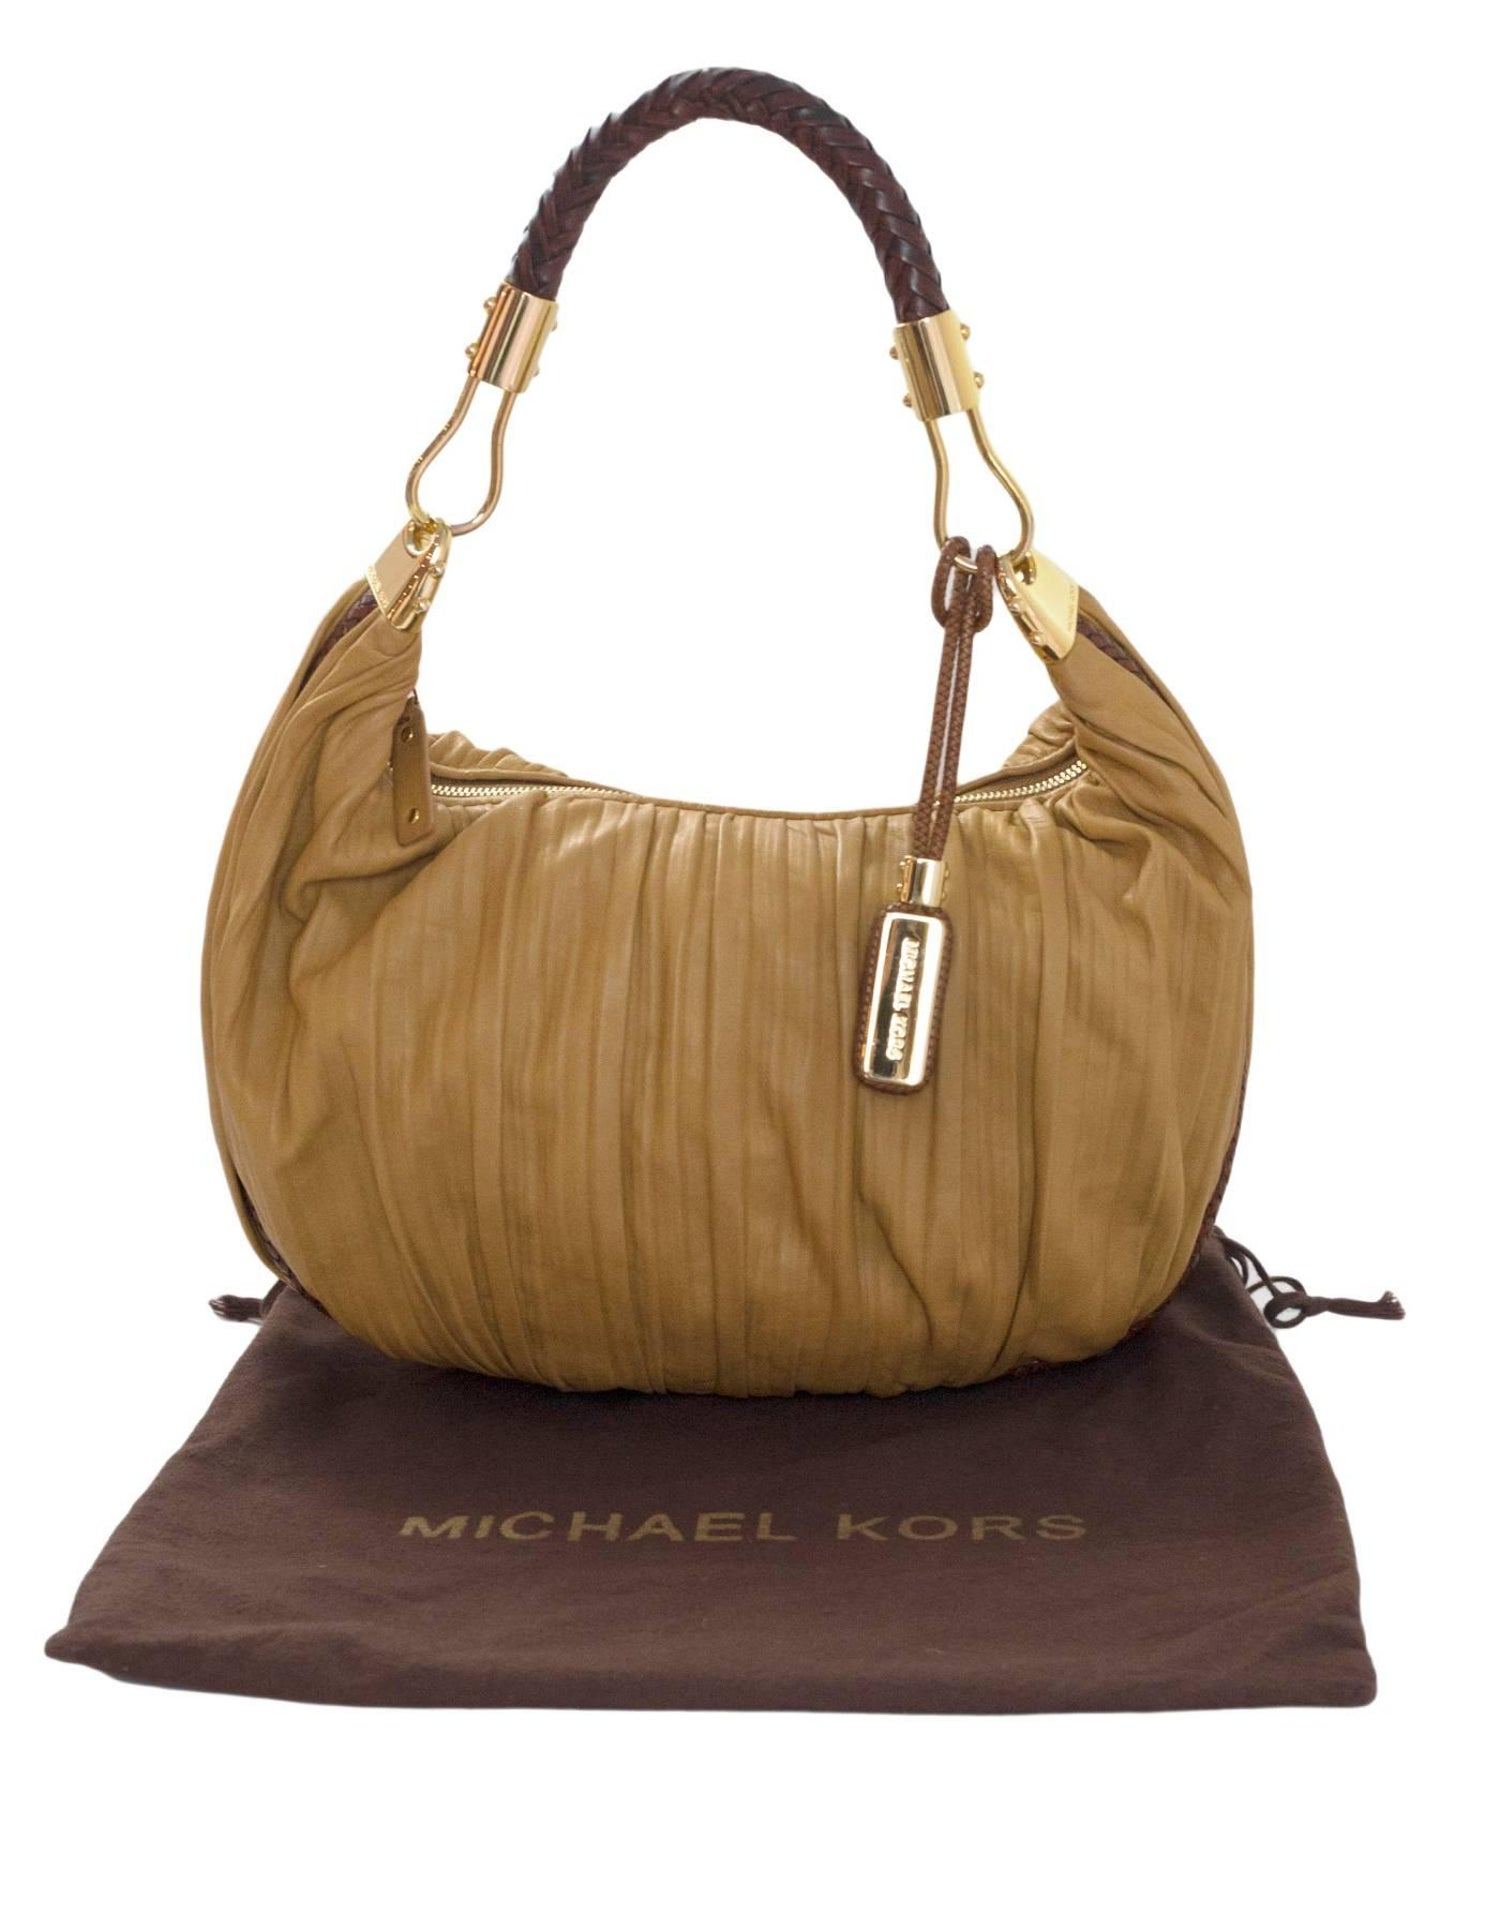 753cdccfffaa Michael Kors Tan Ruched Leather Skorpios Hobo Bag For Sale at 1stdibs